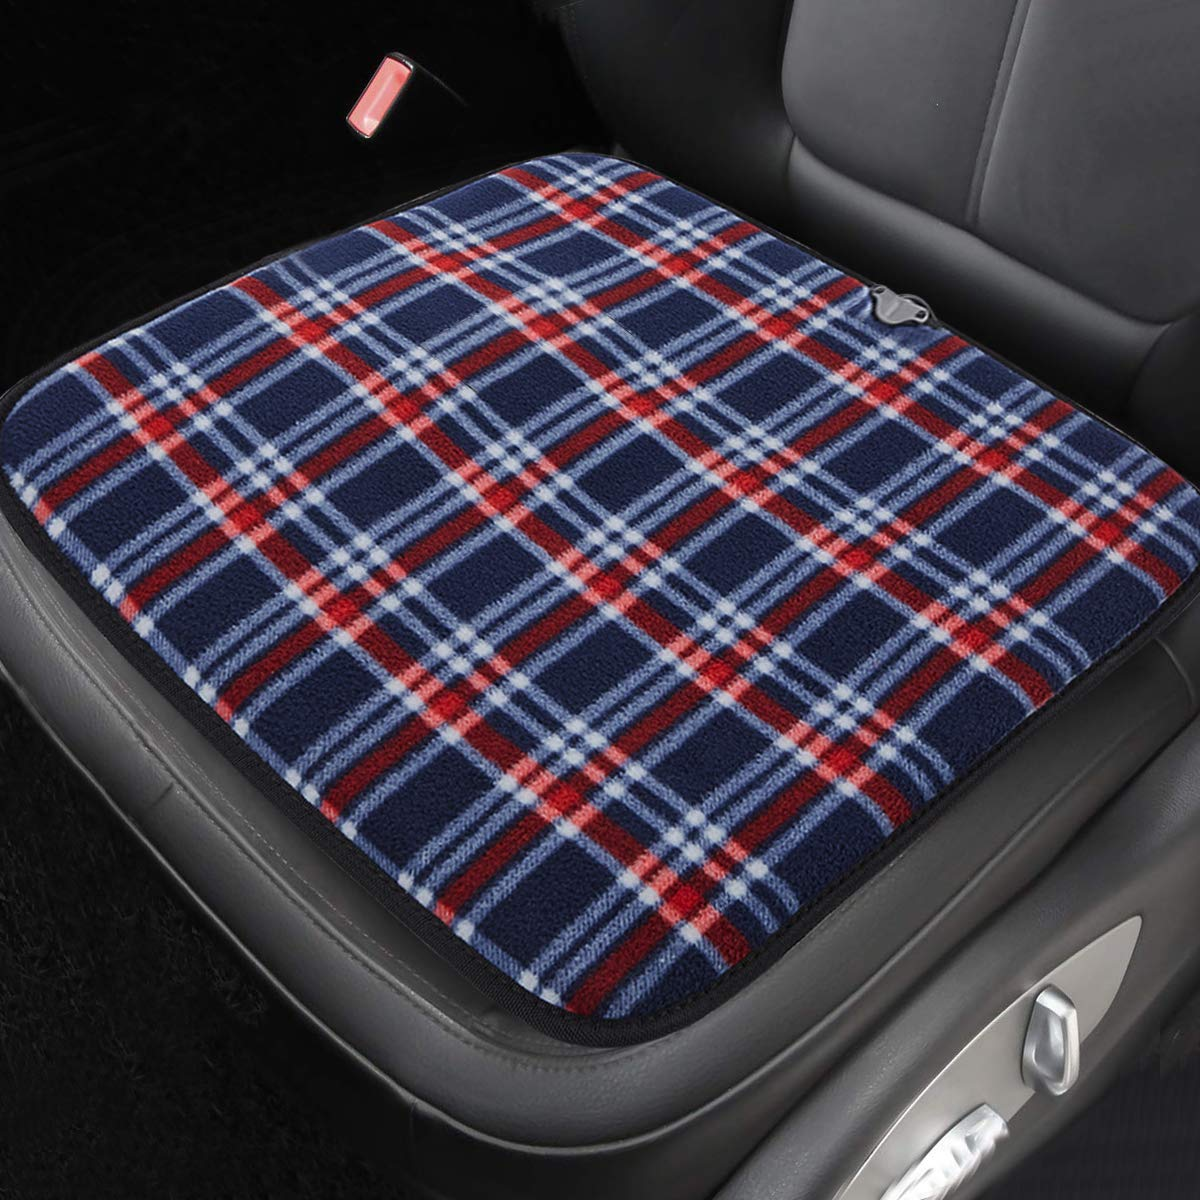 1 PC Big Hippo 12V Car Seat Cushion for Car Driver Seat Office Chair Home Use Heated Seat Cushion for Car Seat Heater USB Heated Seat Cover Car Seat Cushion Pad Fit Most Cars